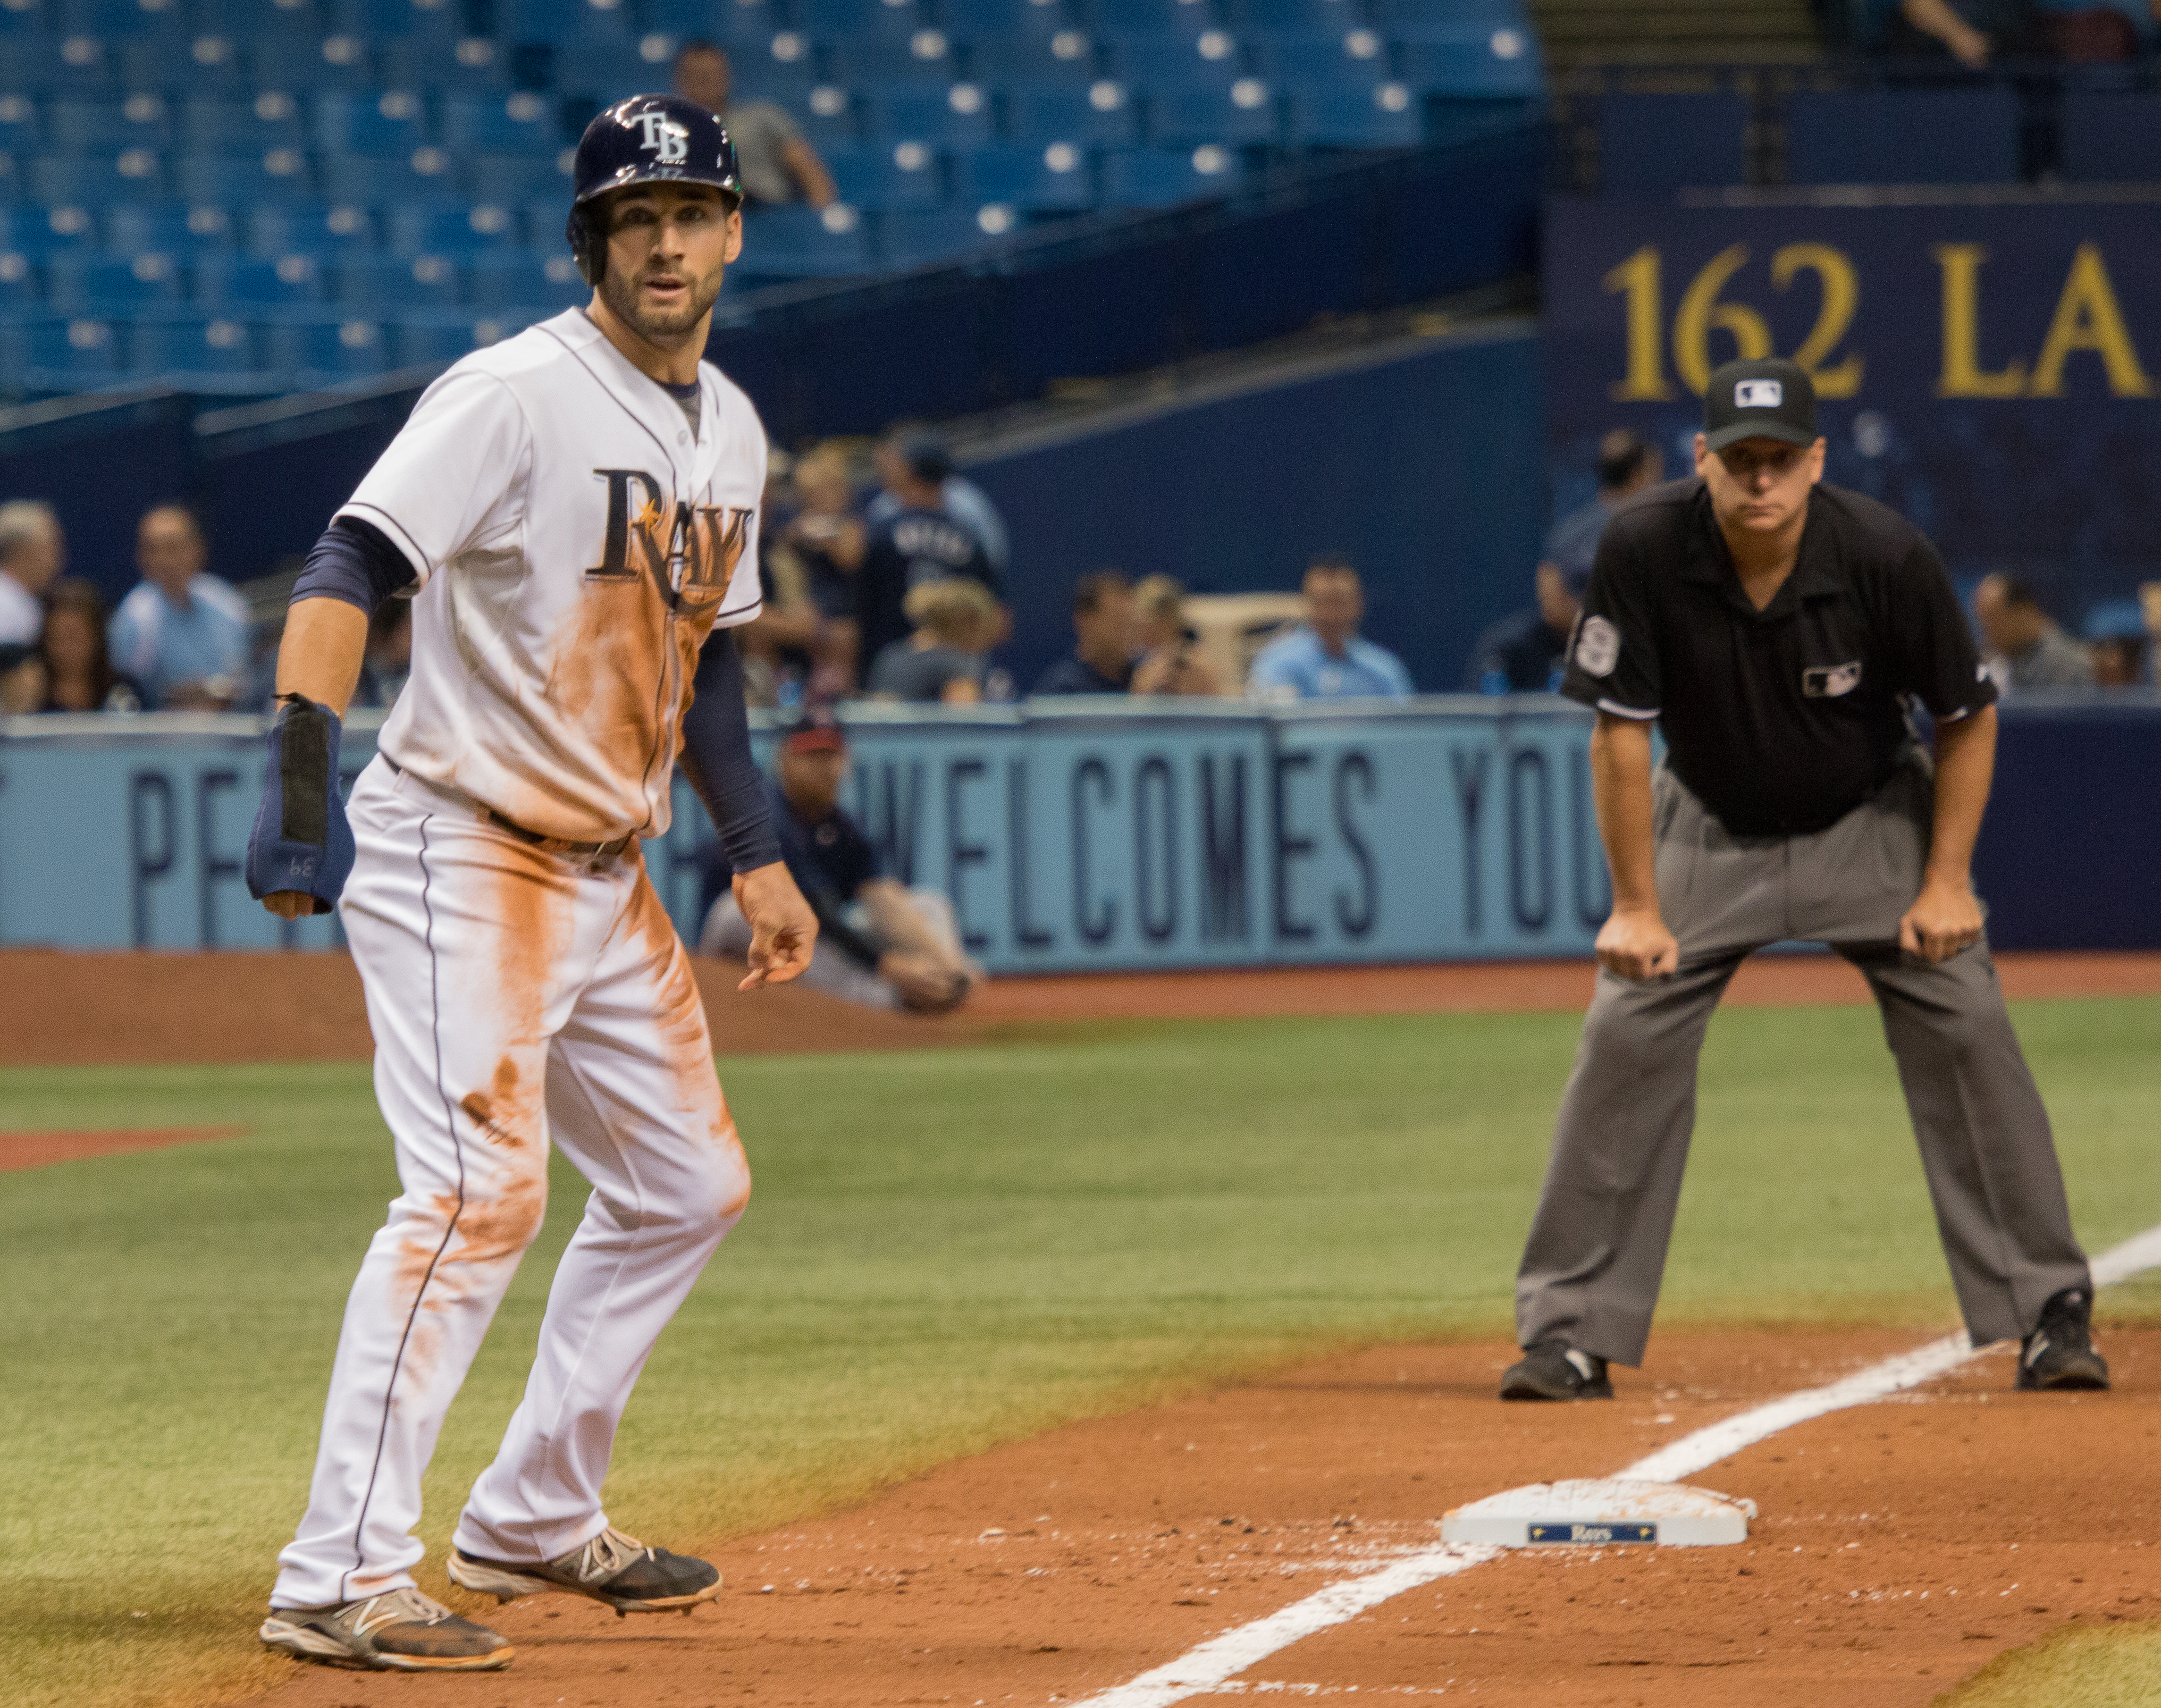 Kiermaier is suddenly one the Rays' hottest hitters./JEFFREY S. KING